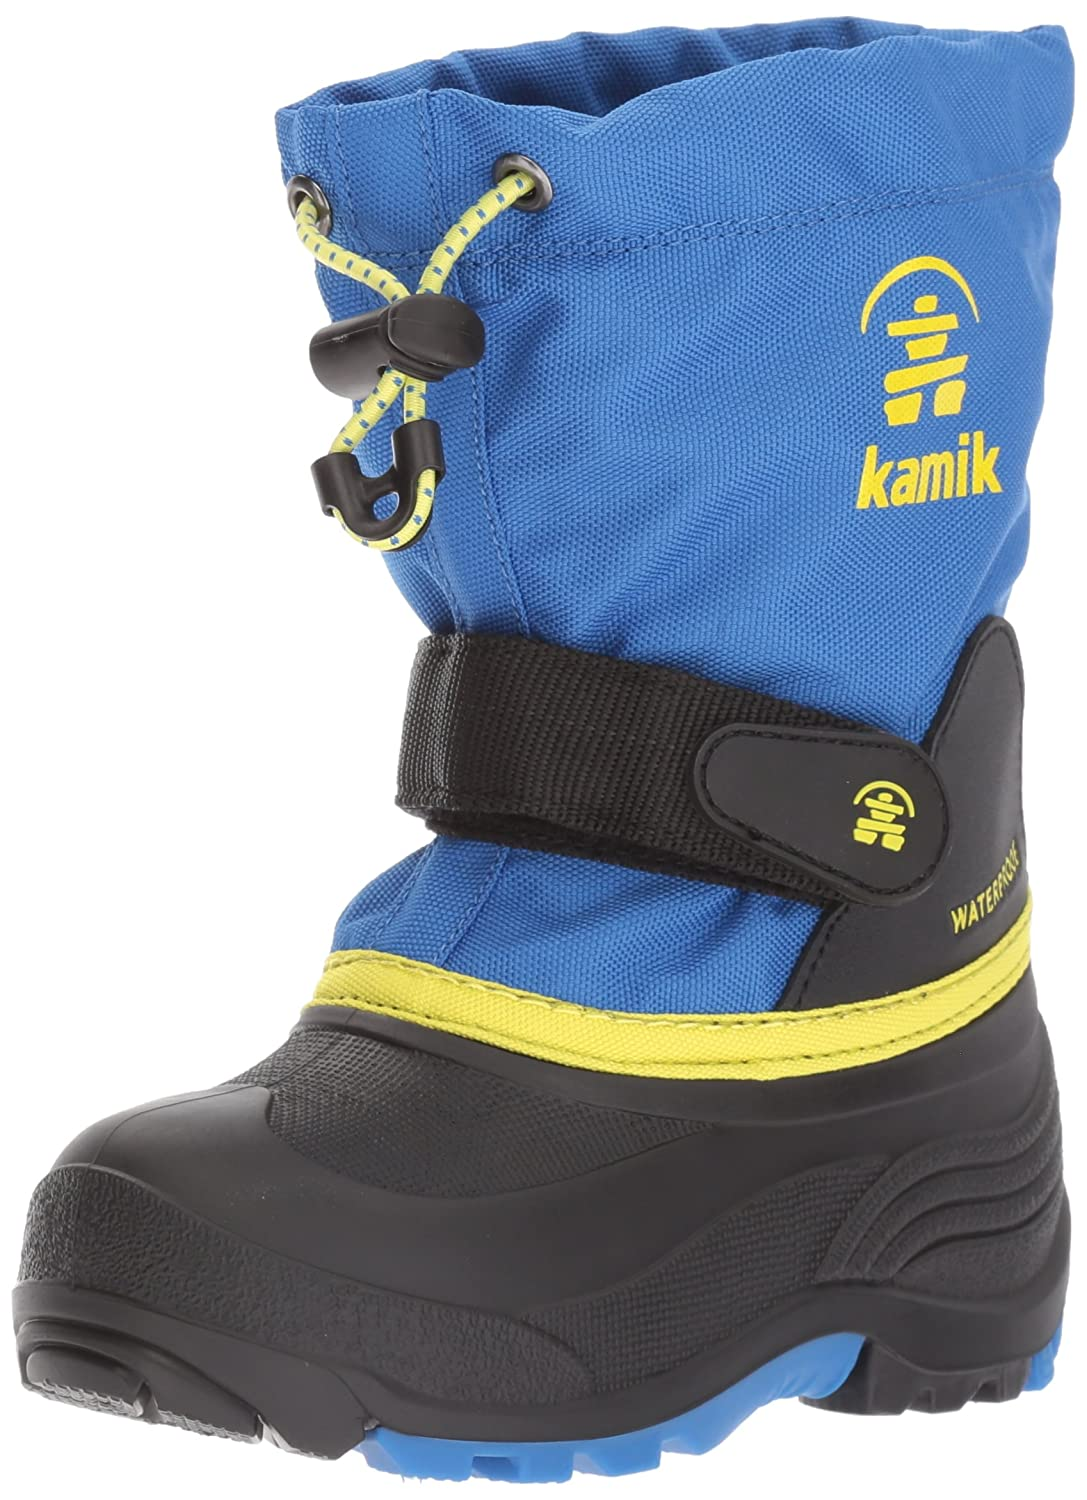 Kamik Kids' Waterbugwide Snow Boot -